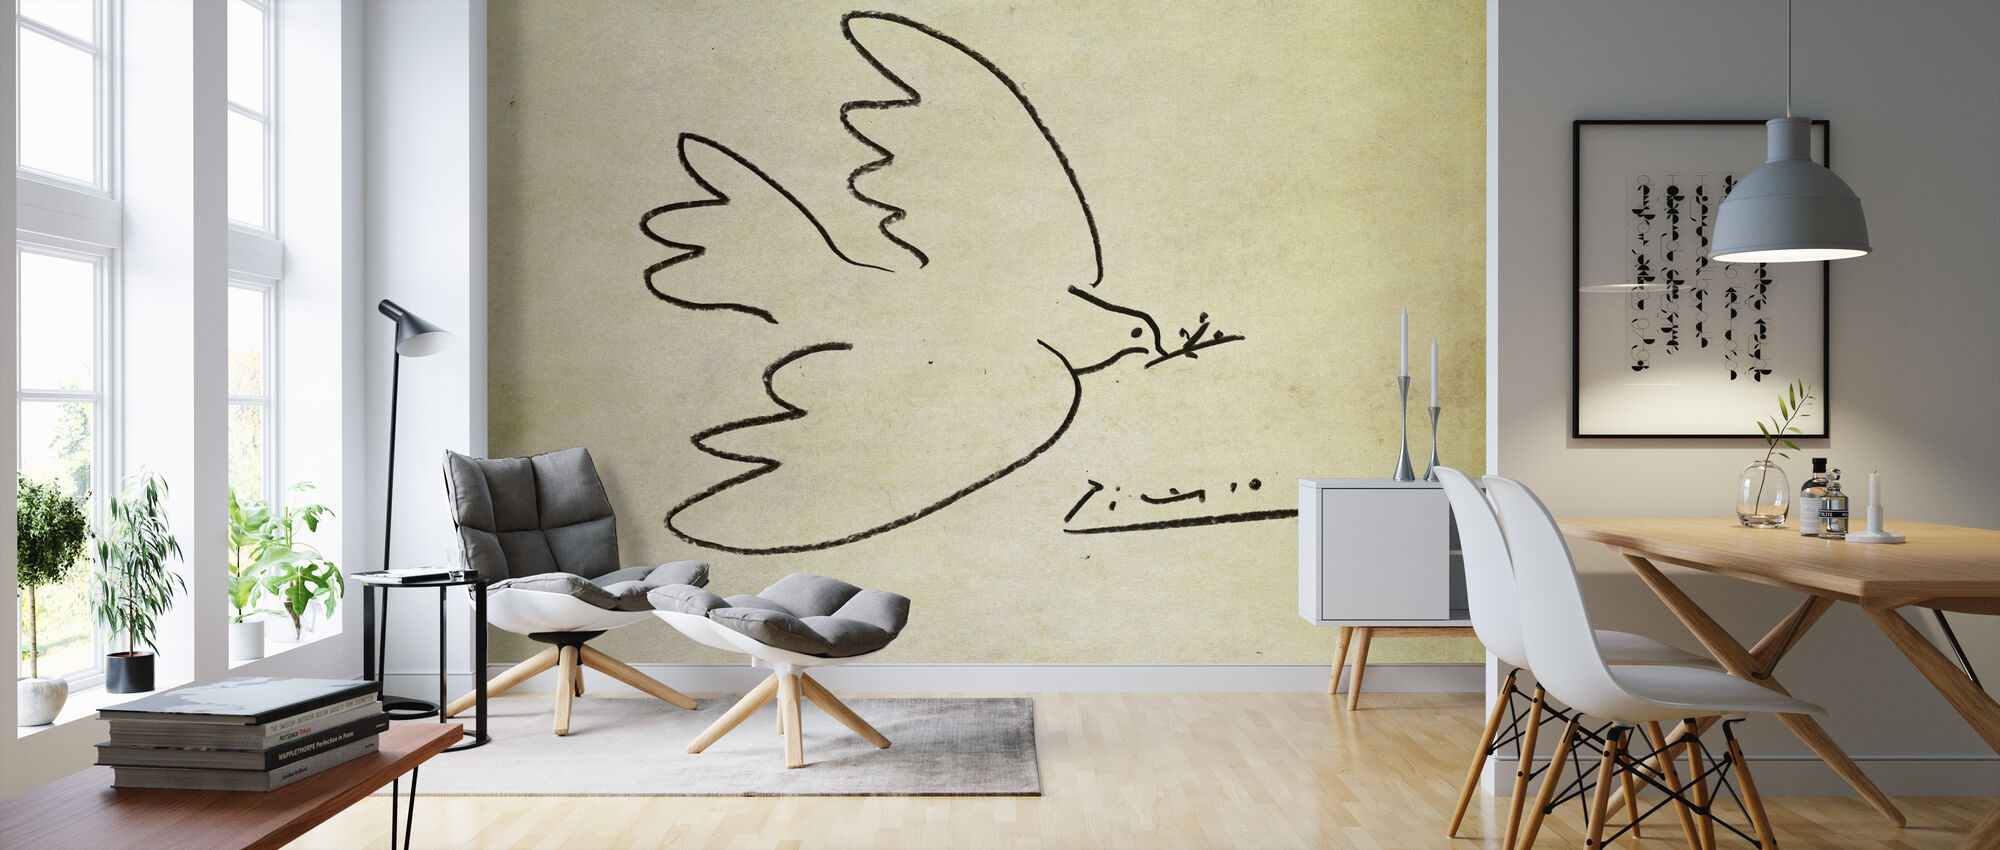 Where - Pablo Picasso - Wallpaper - Living Room